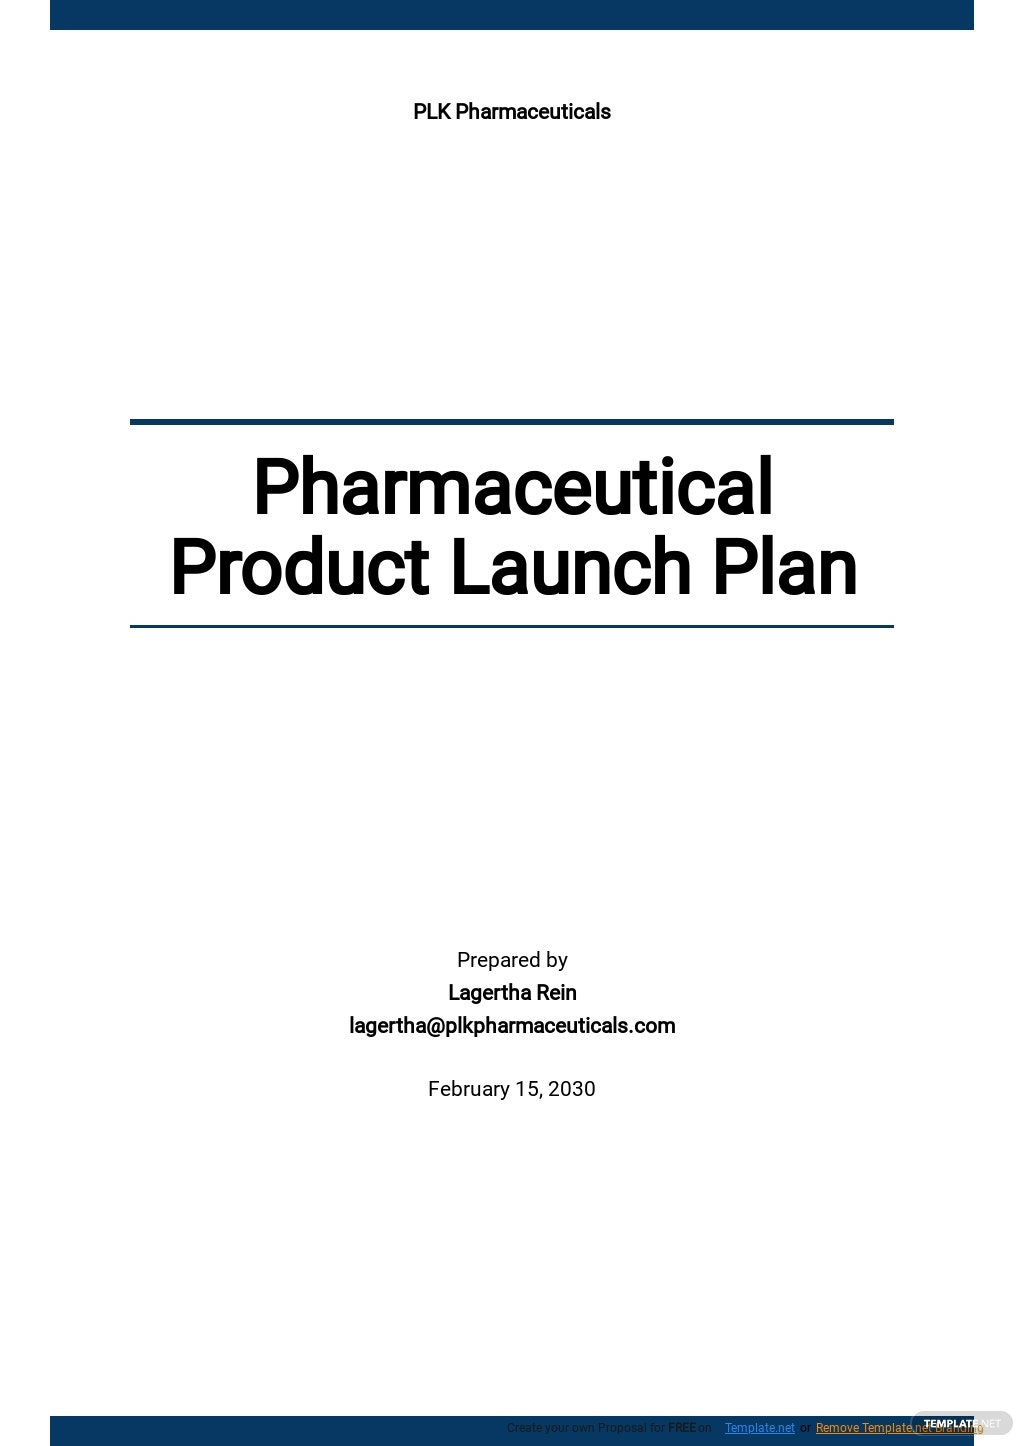 Pharmaceutical Product Launch Plan Template.jpe